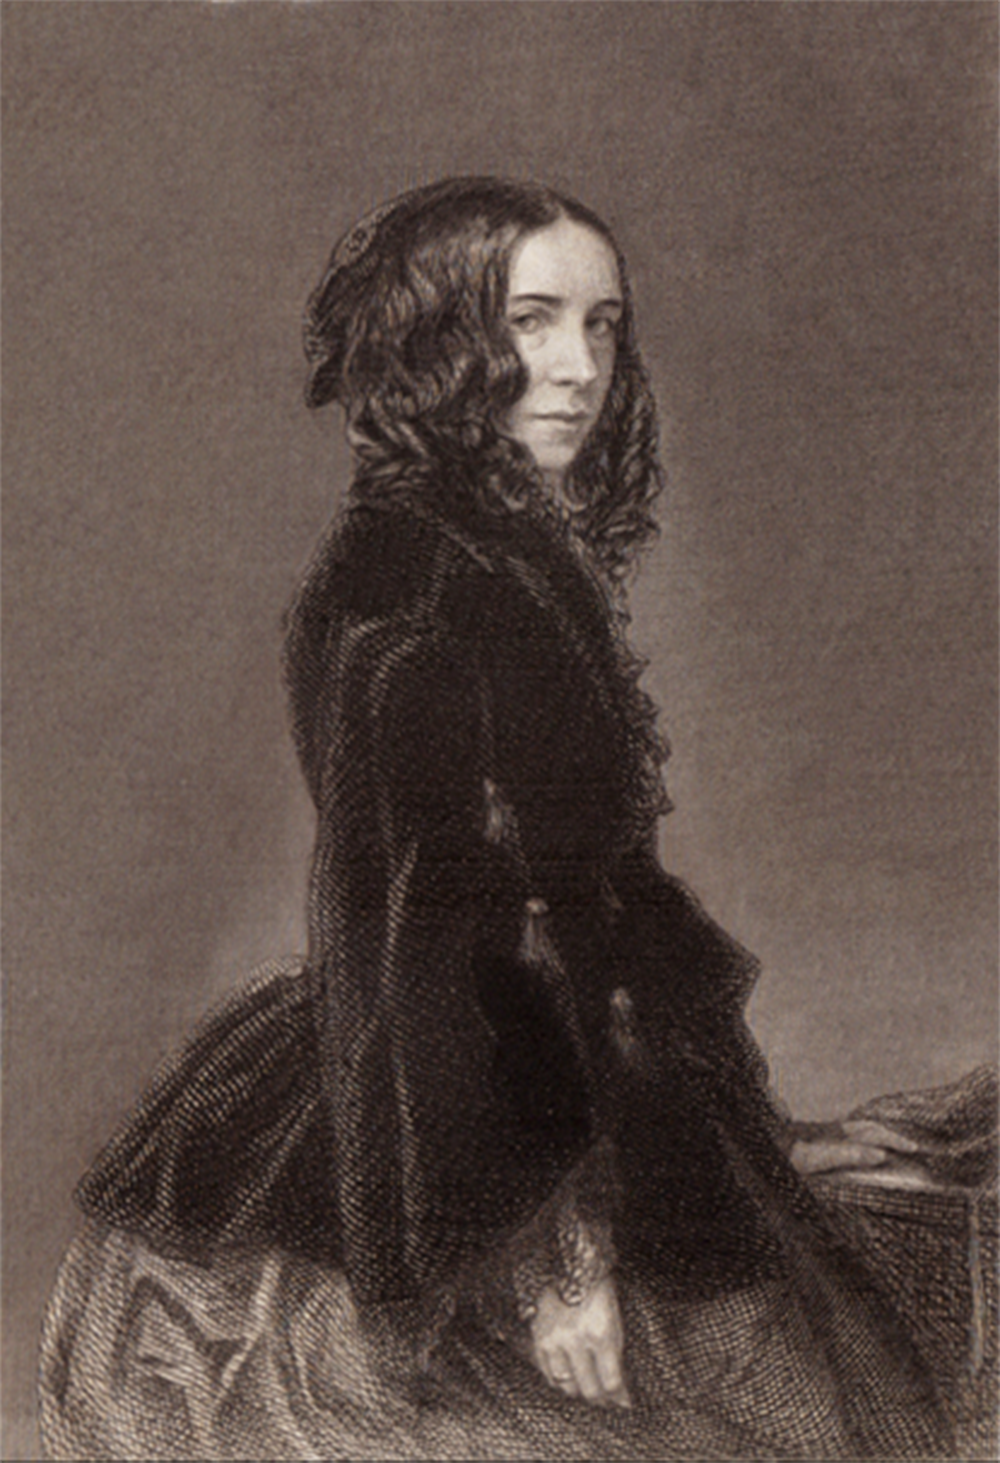 Elizabeth Barrett Browning, by Macaire Havre, engraving by T.O. Barlow, 1859.